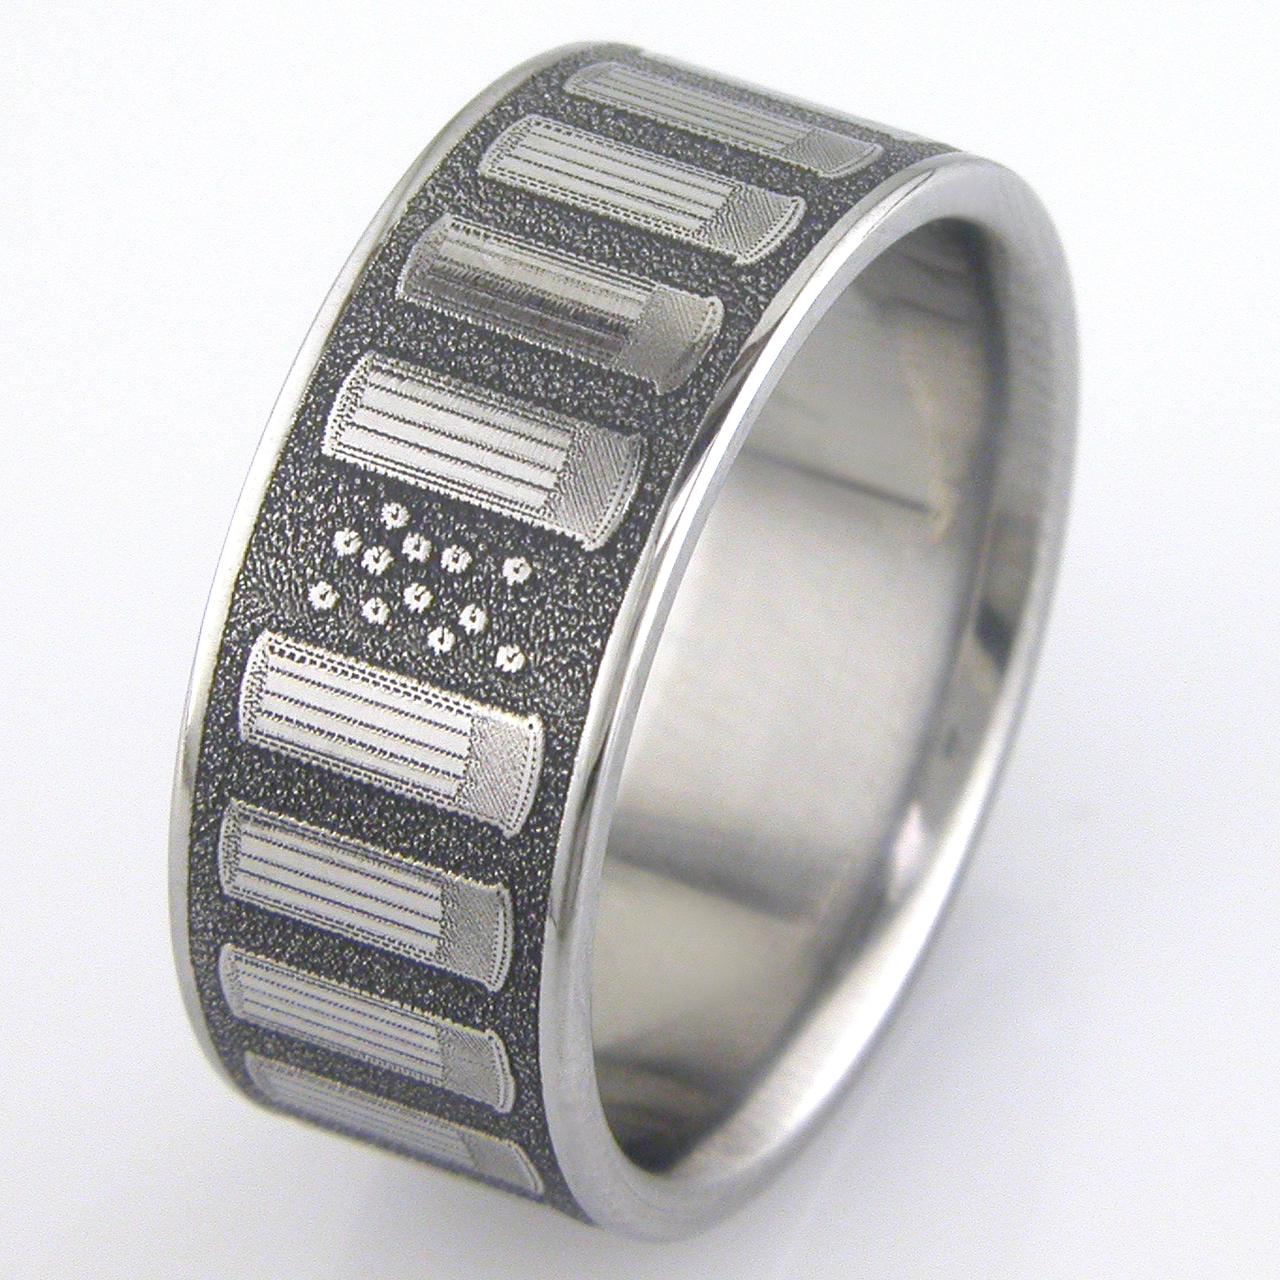 Men's Titanium Shotgun Shell Ring